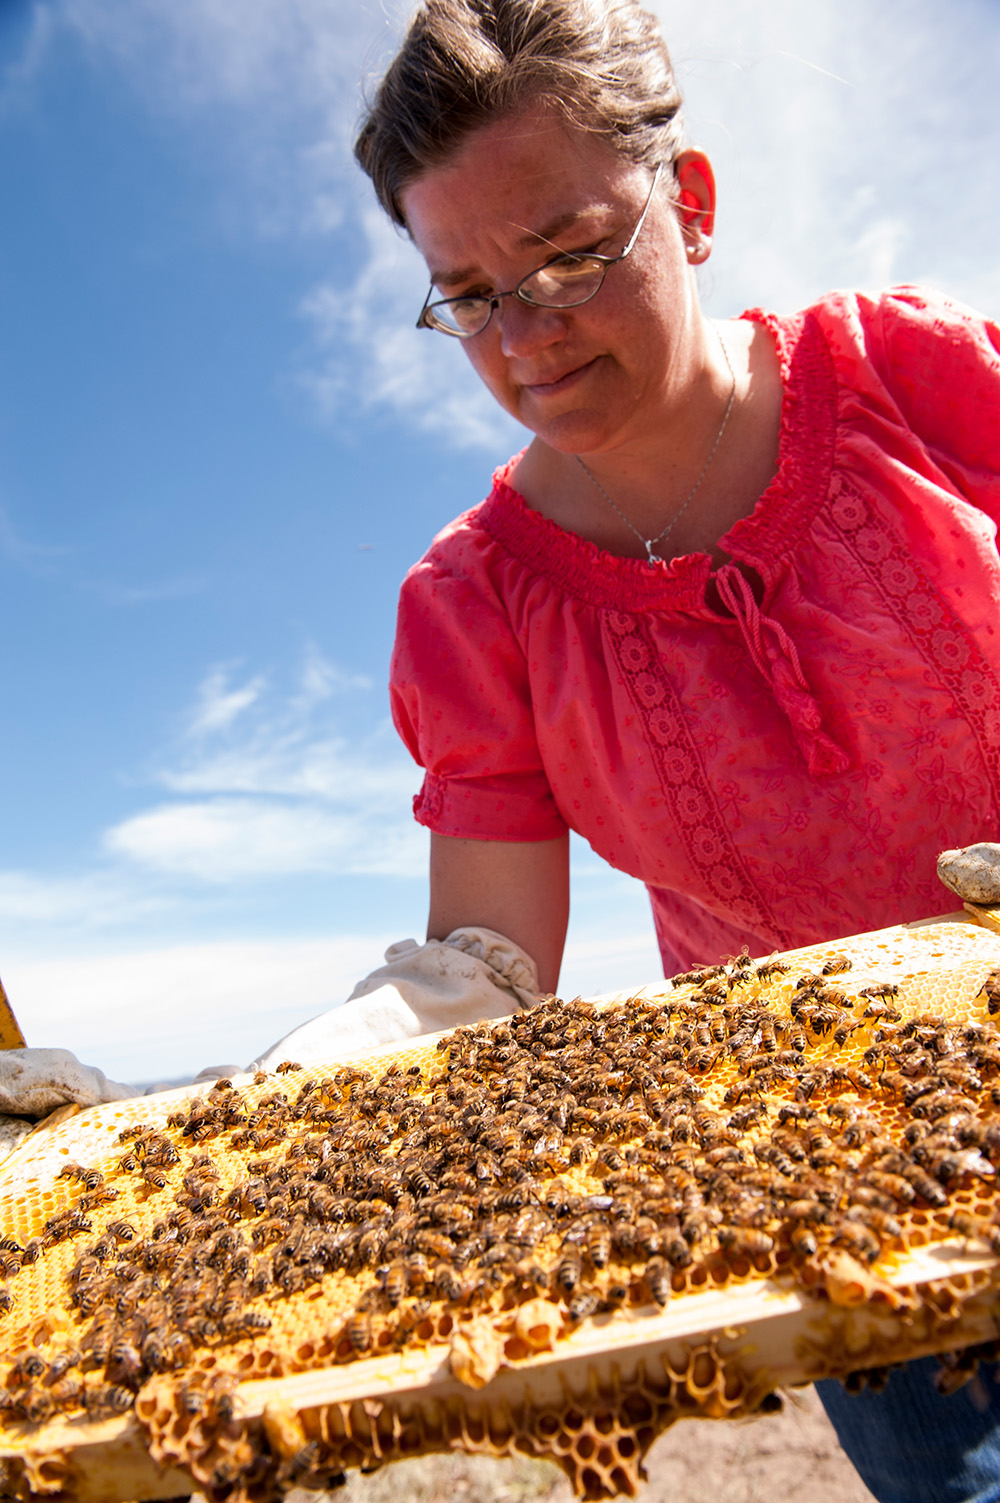 Oregon State University researchers introduced artificial larval pheromones to hives to make bees sense there is a large brood of larvae that needs feeding